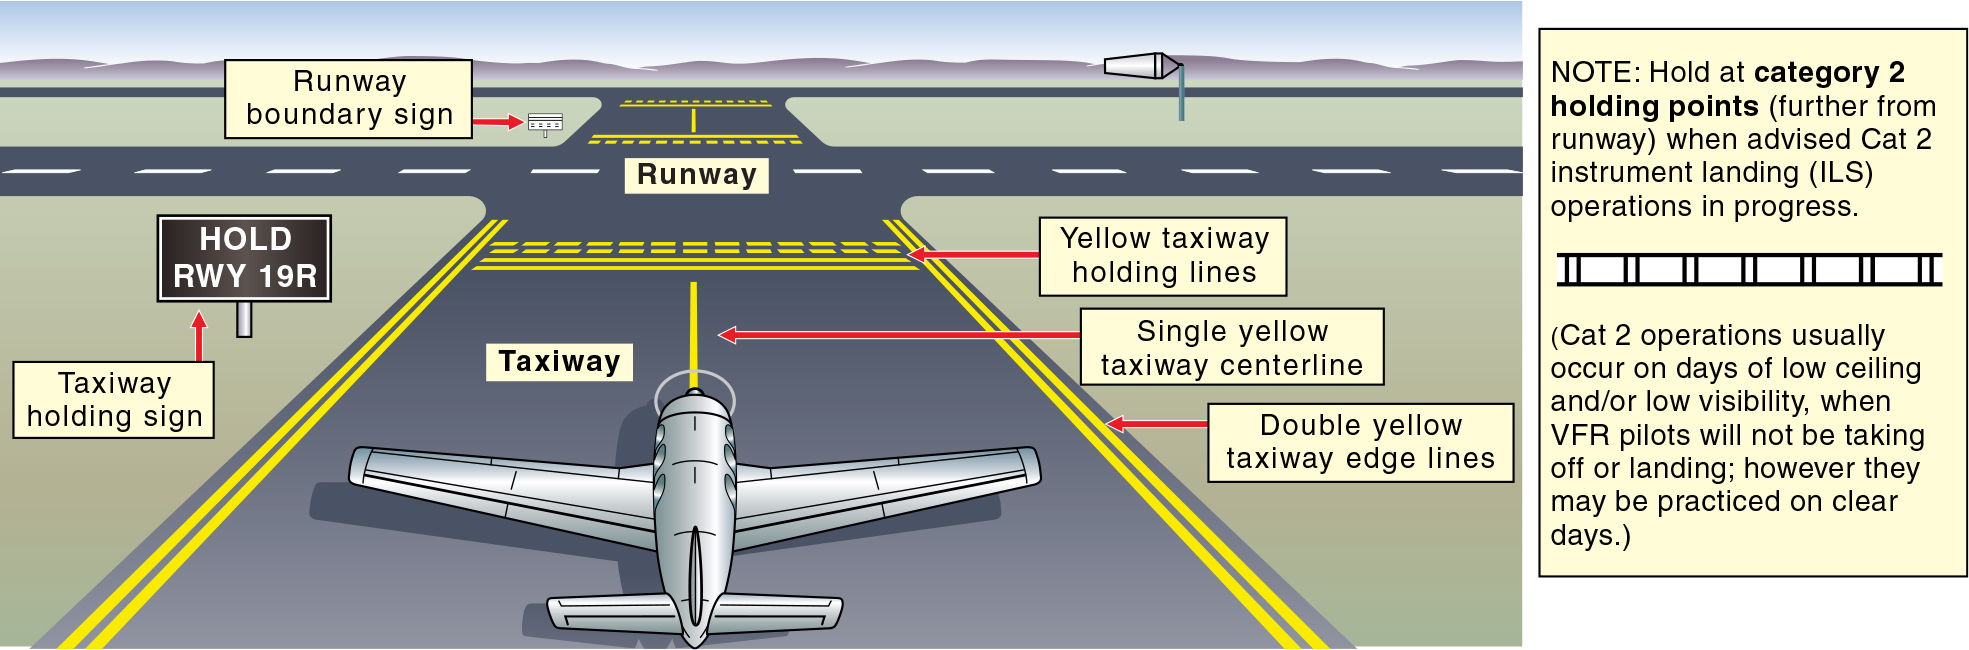 Taxiway markings are in yellow